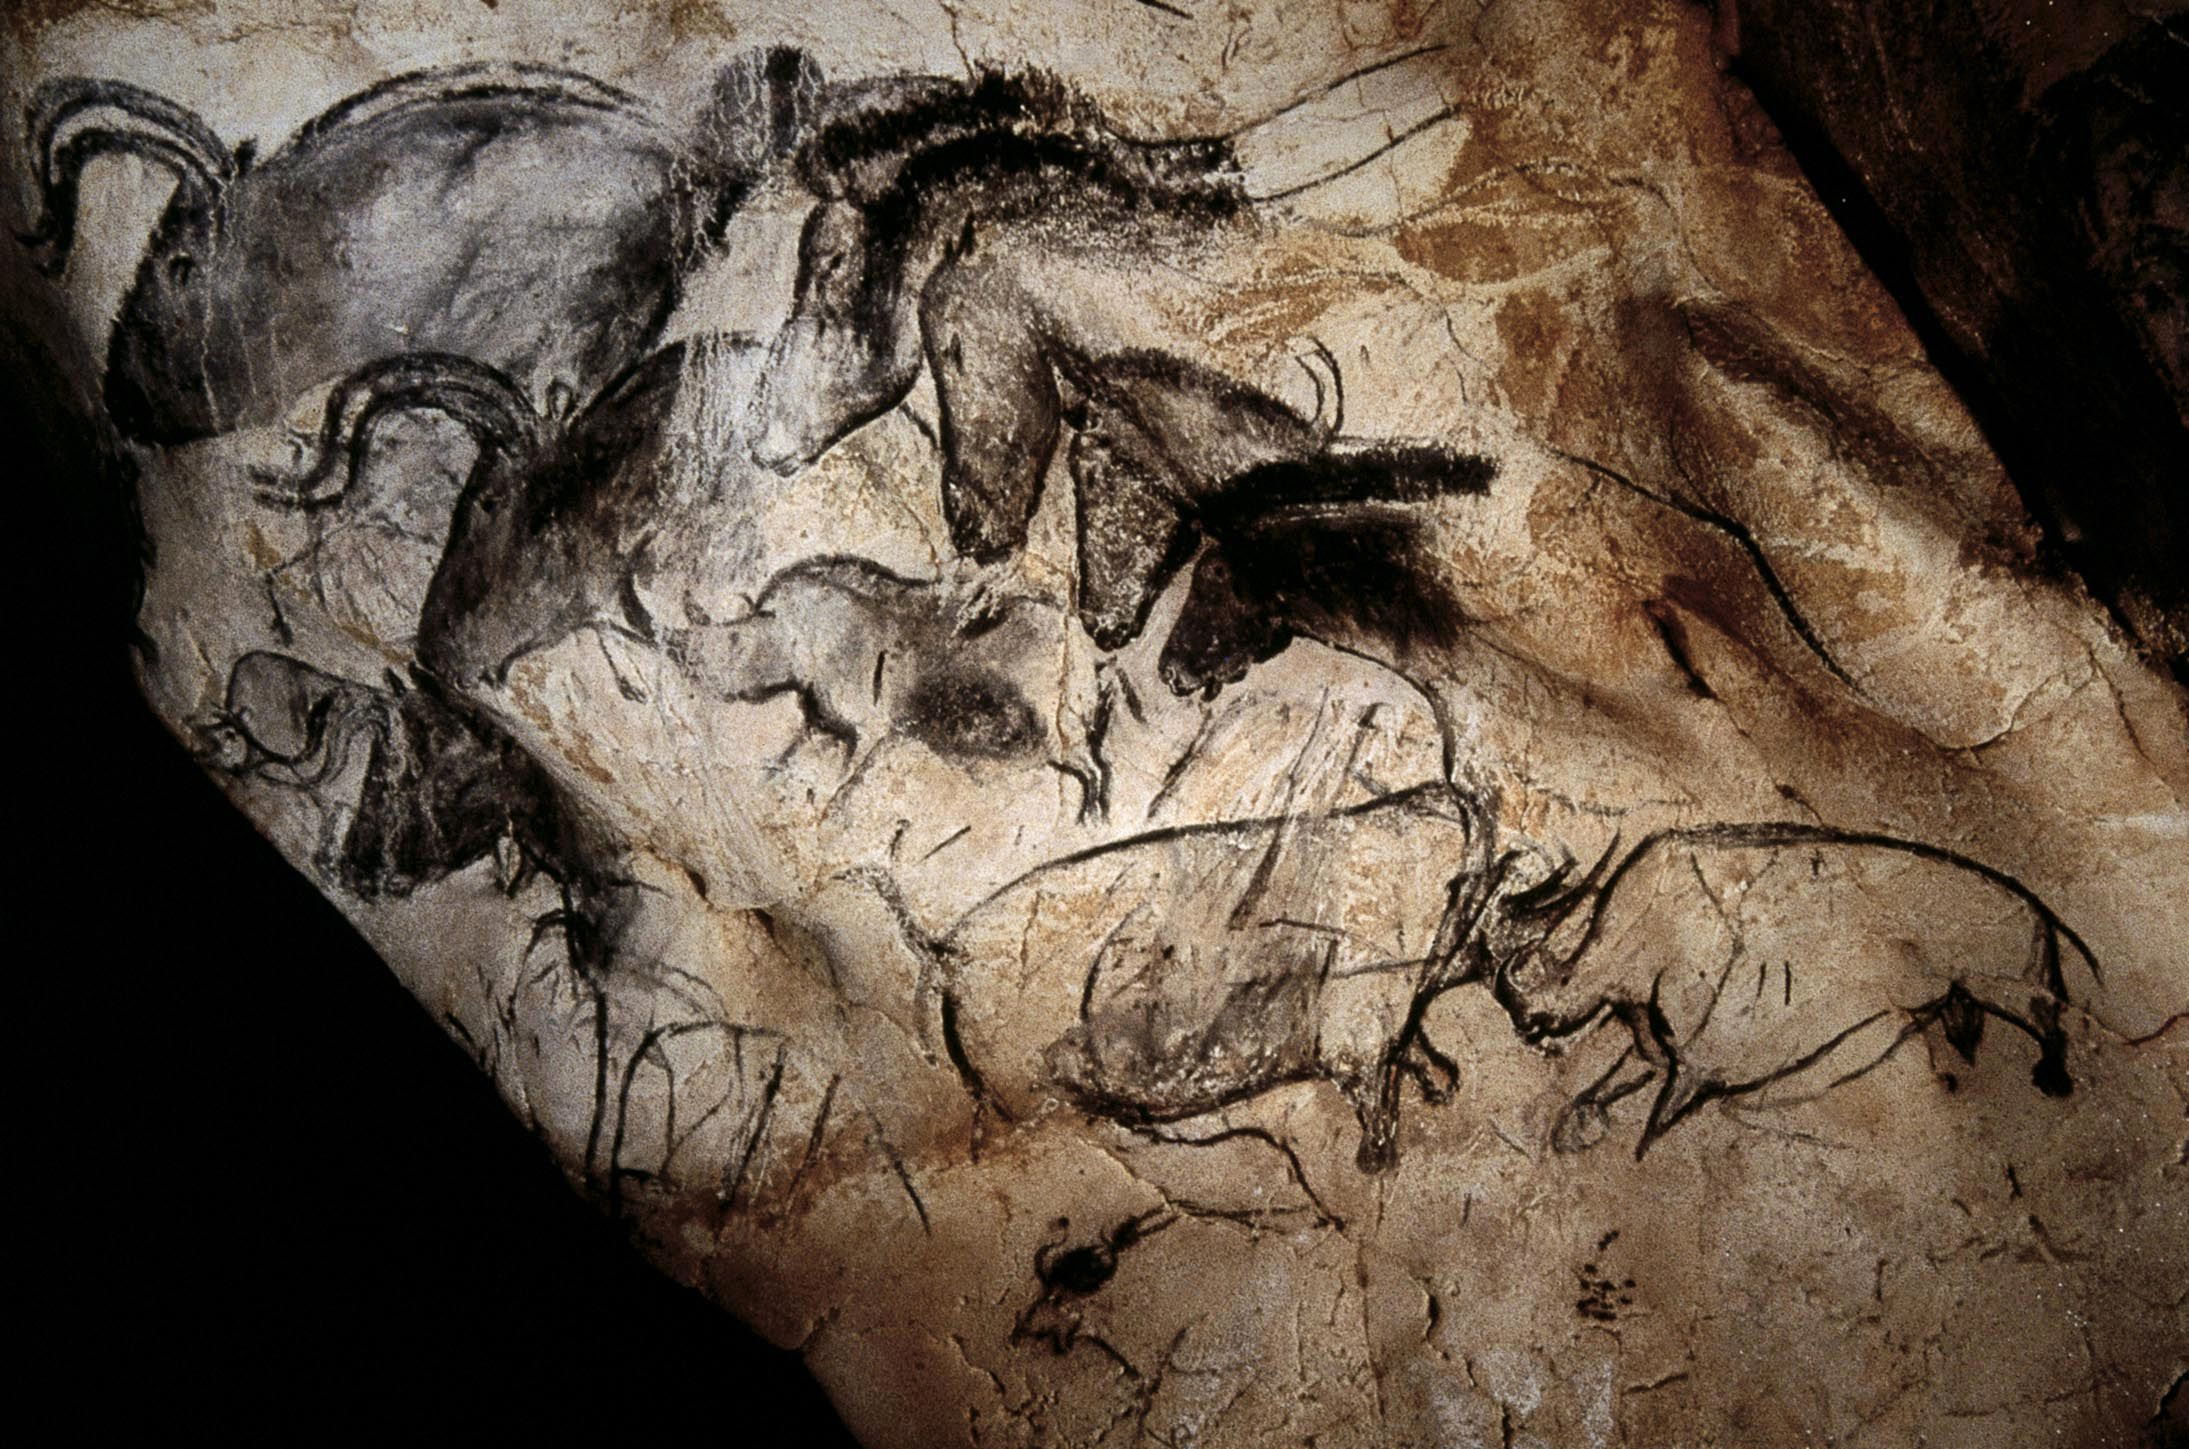 Unknown Aurochs Horses And Rhinoceroses Wall Painting In The Chauvet Cave Vallon Pont D Arc France Pigment Cave Paintings Chauvet Cave Prehistoric Art